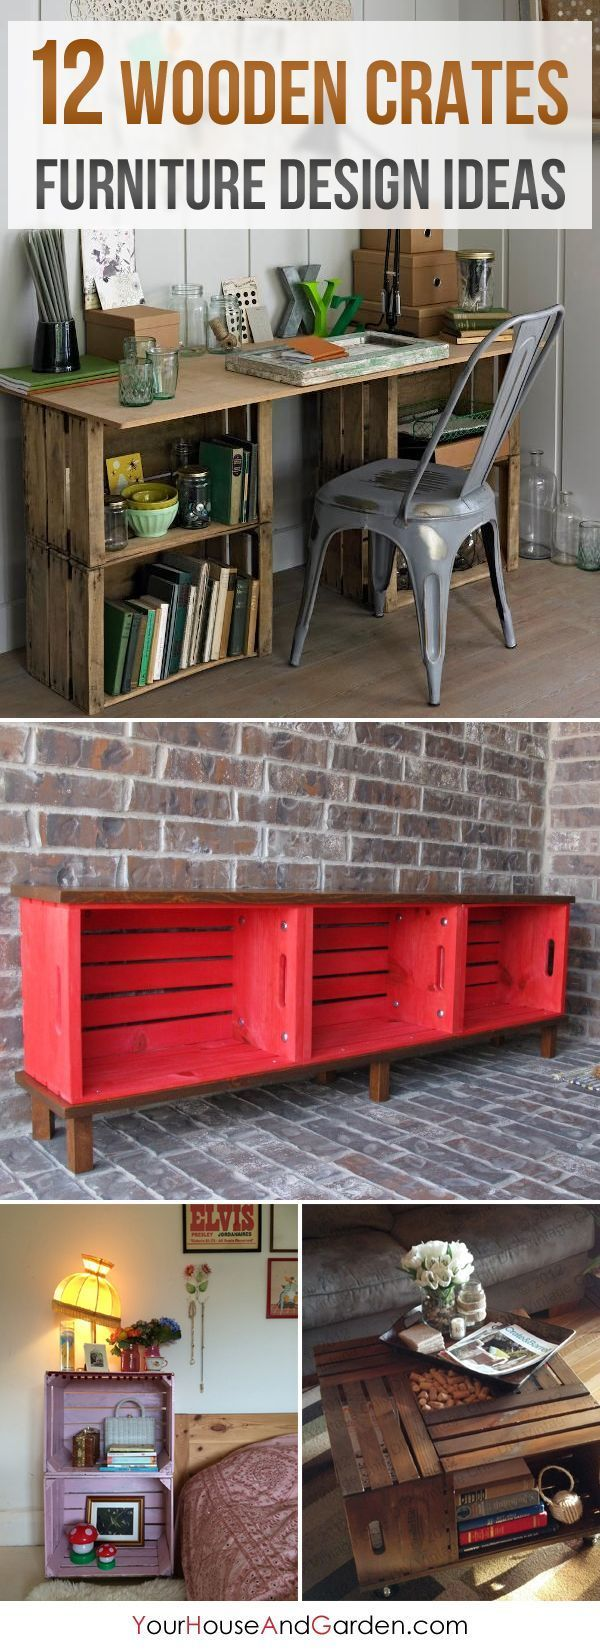 12 Amazing Wooden Crates Furniture Design Ideas - Wooden crates can be an inexpensive way to create almost anything for the home decor. building furniture building projects